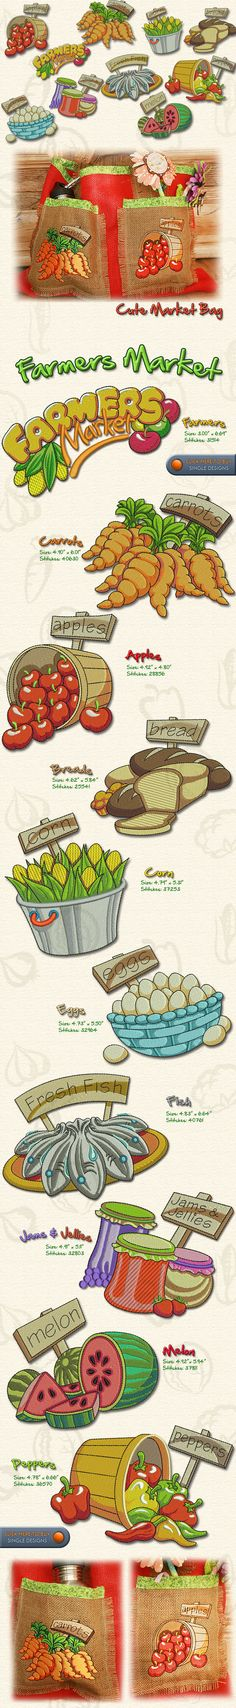 FARMERS MARKET, Embroidery Designs Free Embroidery Design Patterns Applique